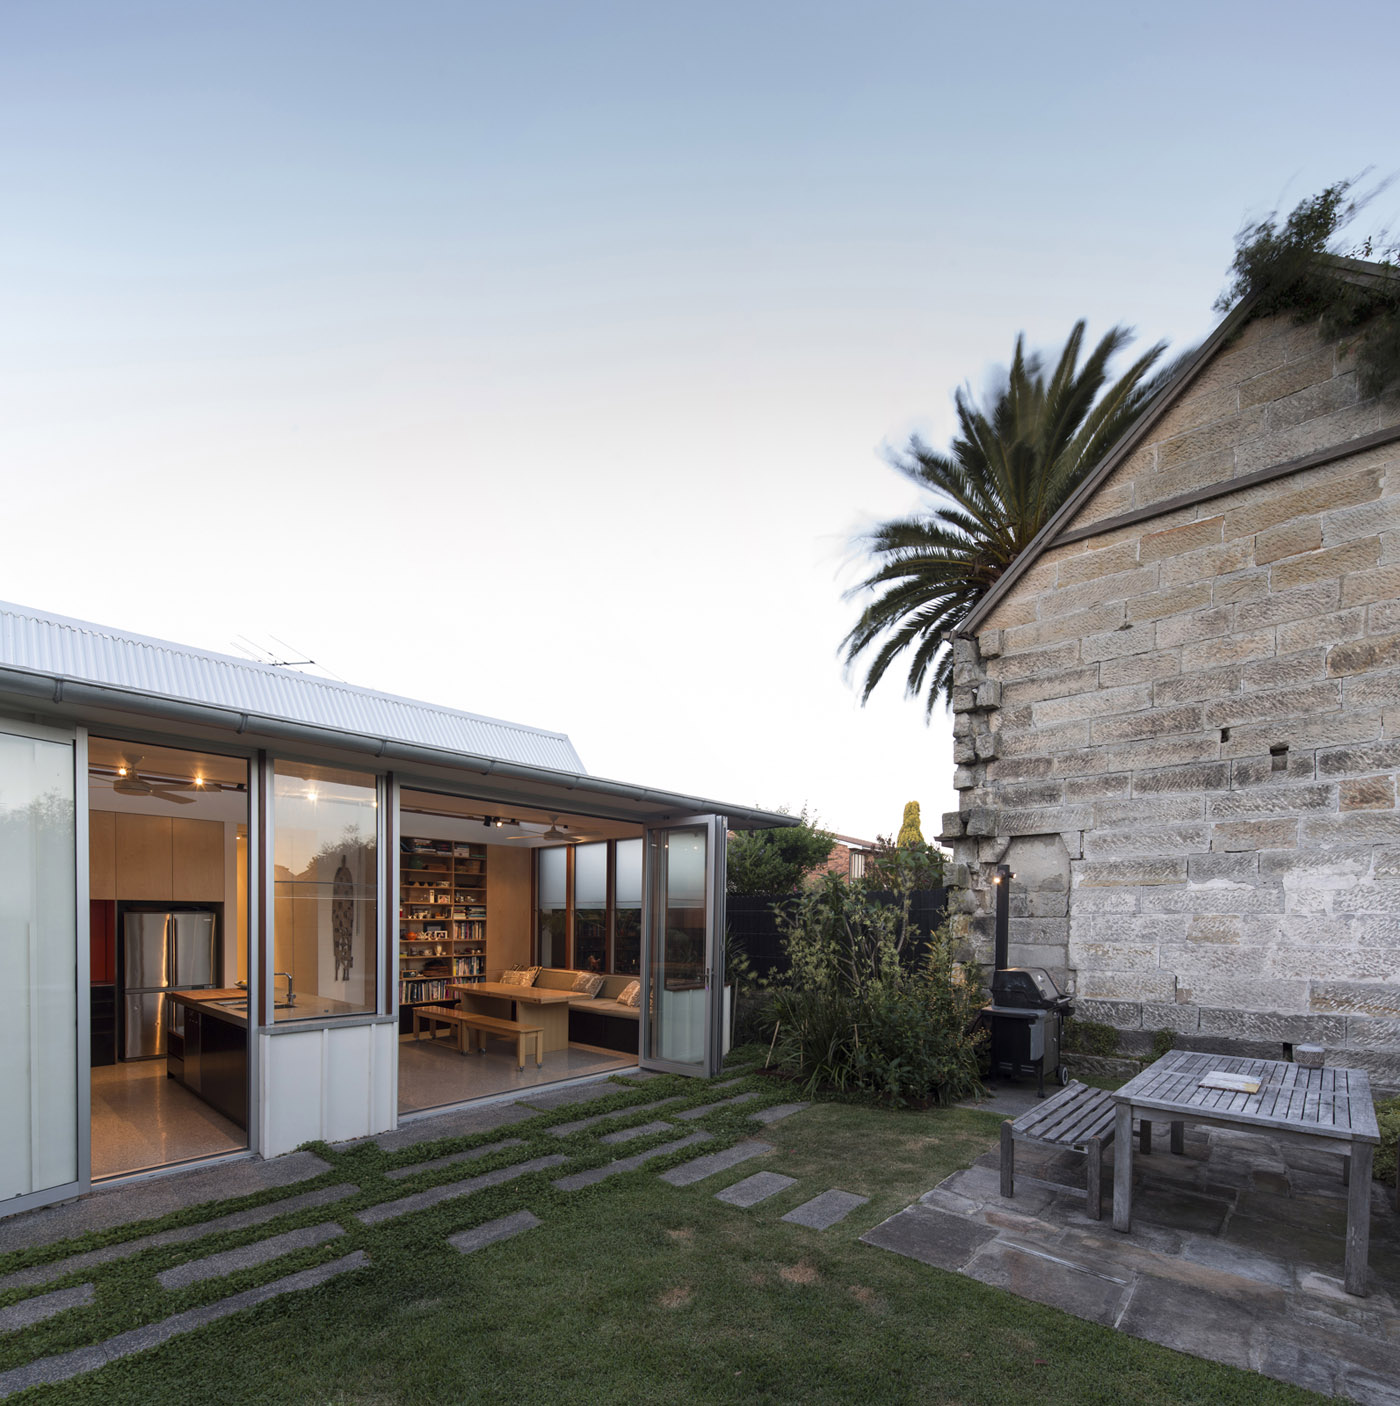 Salgo Kitching House by Sydney award winning architecture office Sam Crawford Architects. Open connection to backyard characterised by existing sandstone wall.